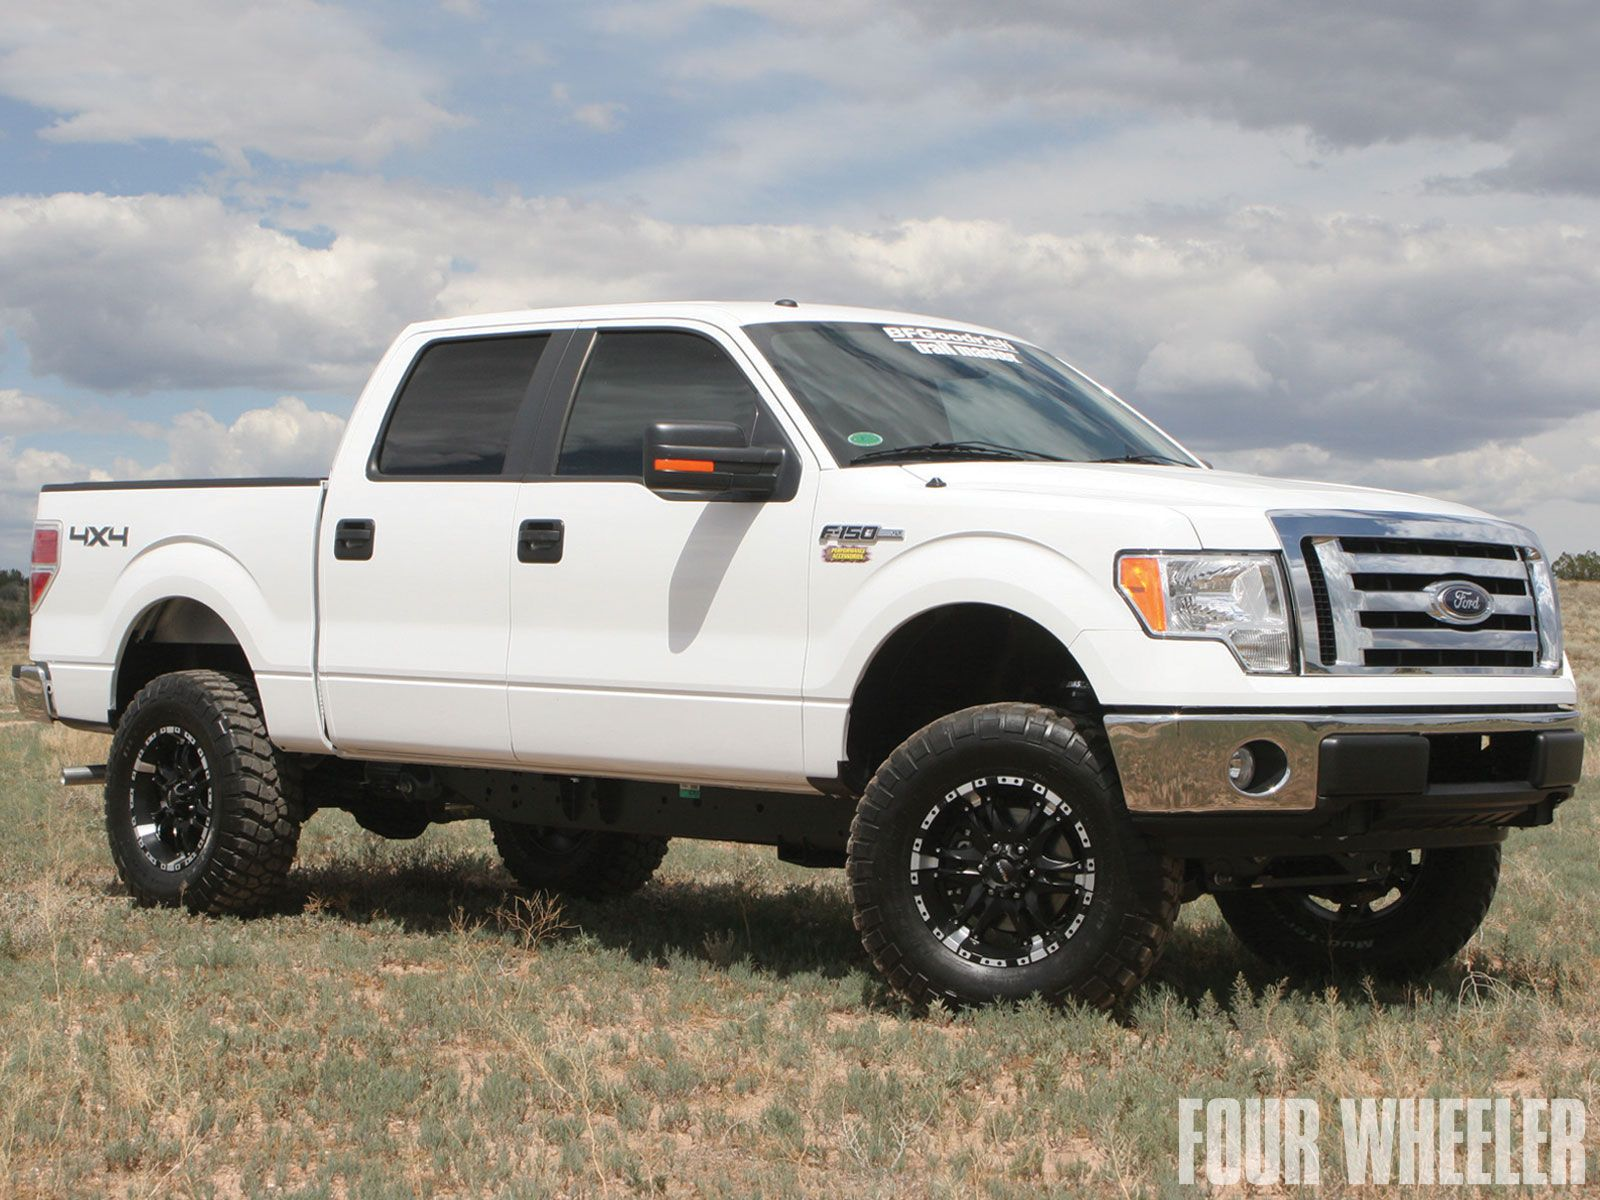 Ford F-150 Review - Research New & Used Ford F-150 Models   Lift kits and Ford